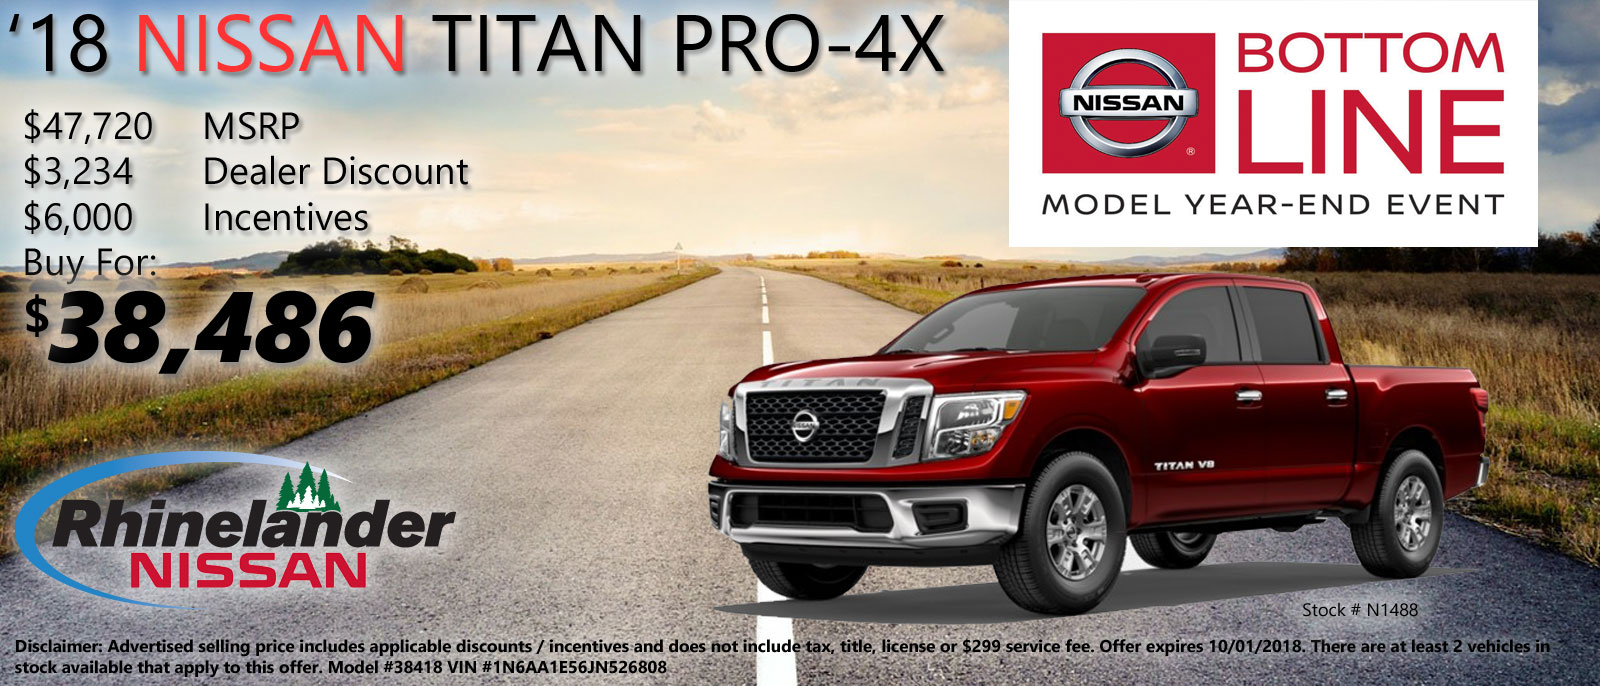 Rhinelander Nissan Vehicles For Sale In Rhinelander WI - Car pro show discount